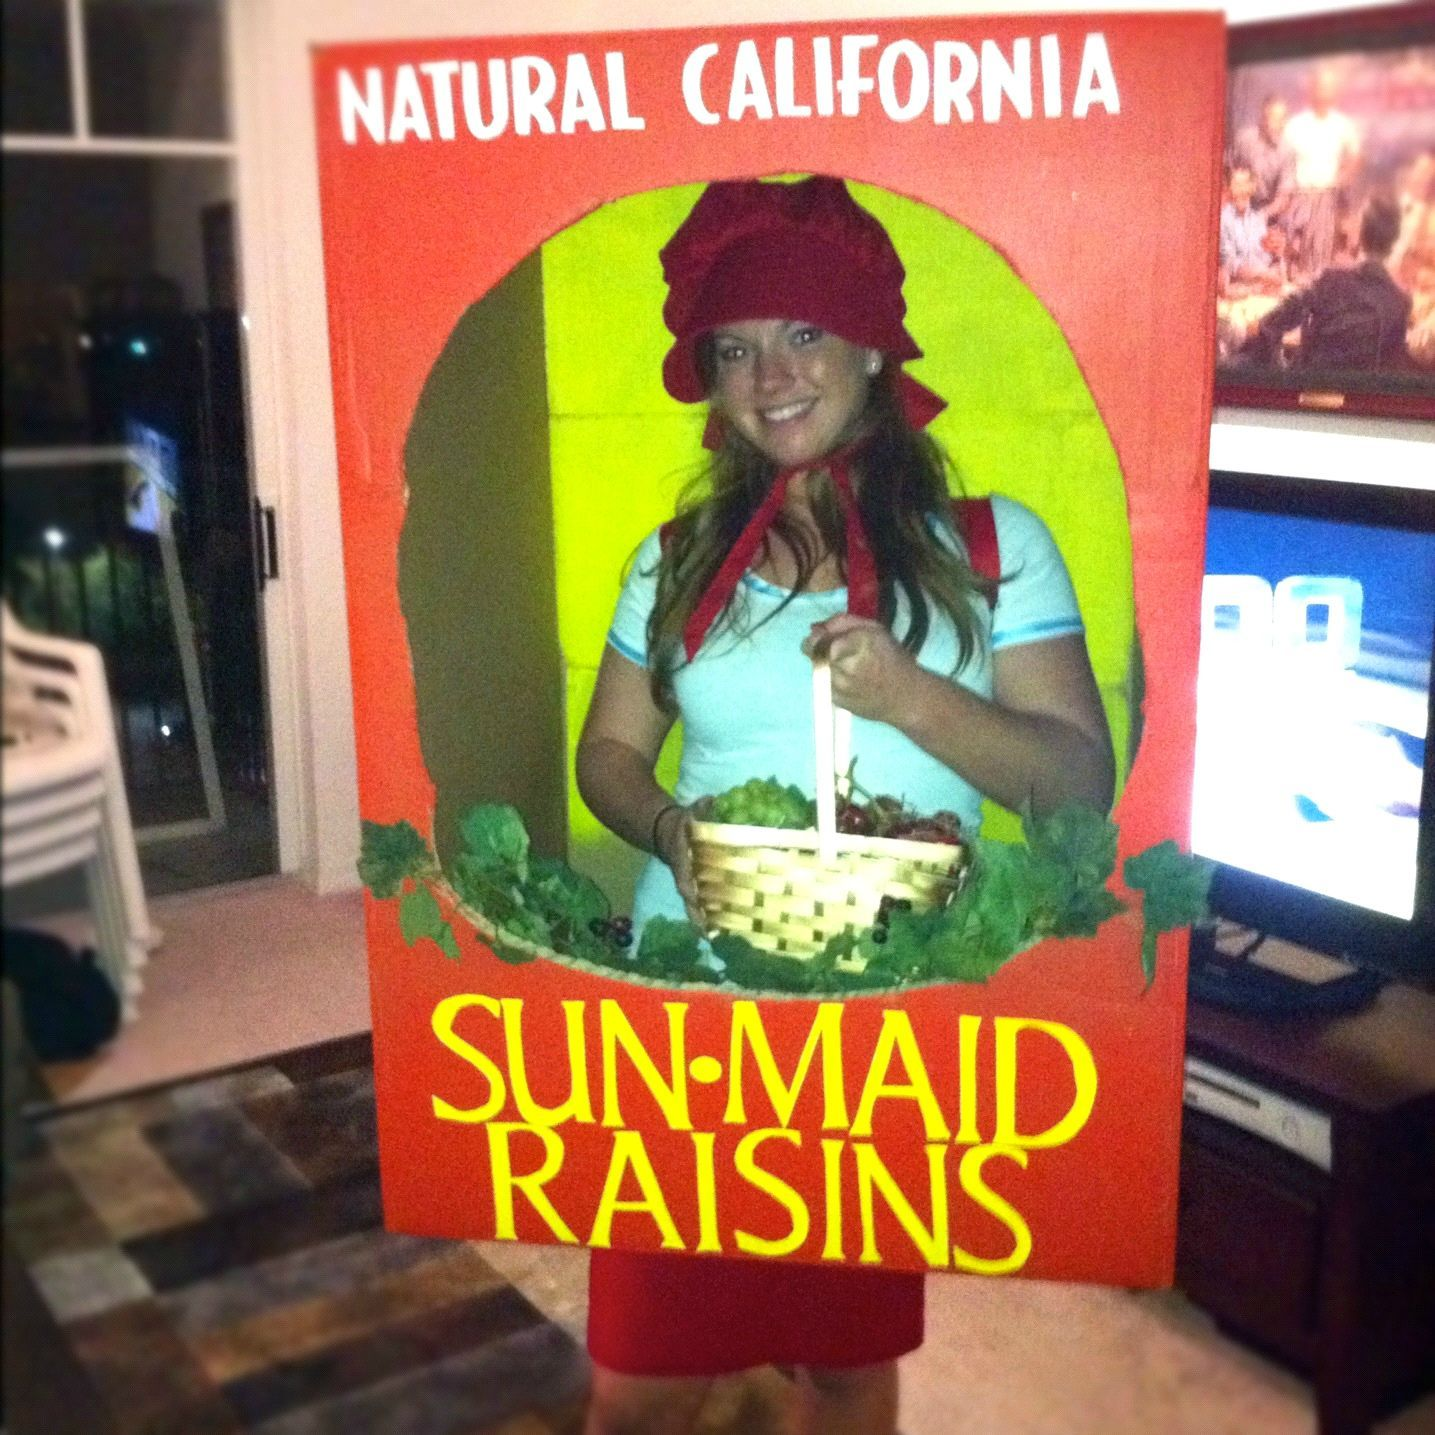 #Halloween costume 2011 Sunmaid Raisin Girl IN the box. Hand painted no computers used - and those are REAL grapes in my basket! more info megan[.  sc 1 st  Pinterest & Halloween costume 2011: Sunmaid Raisin Girl IN the box. Hand painted ...